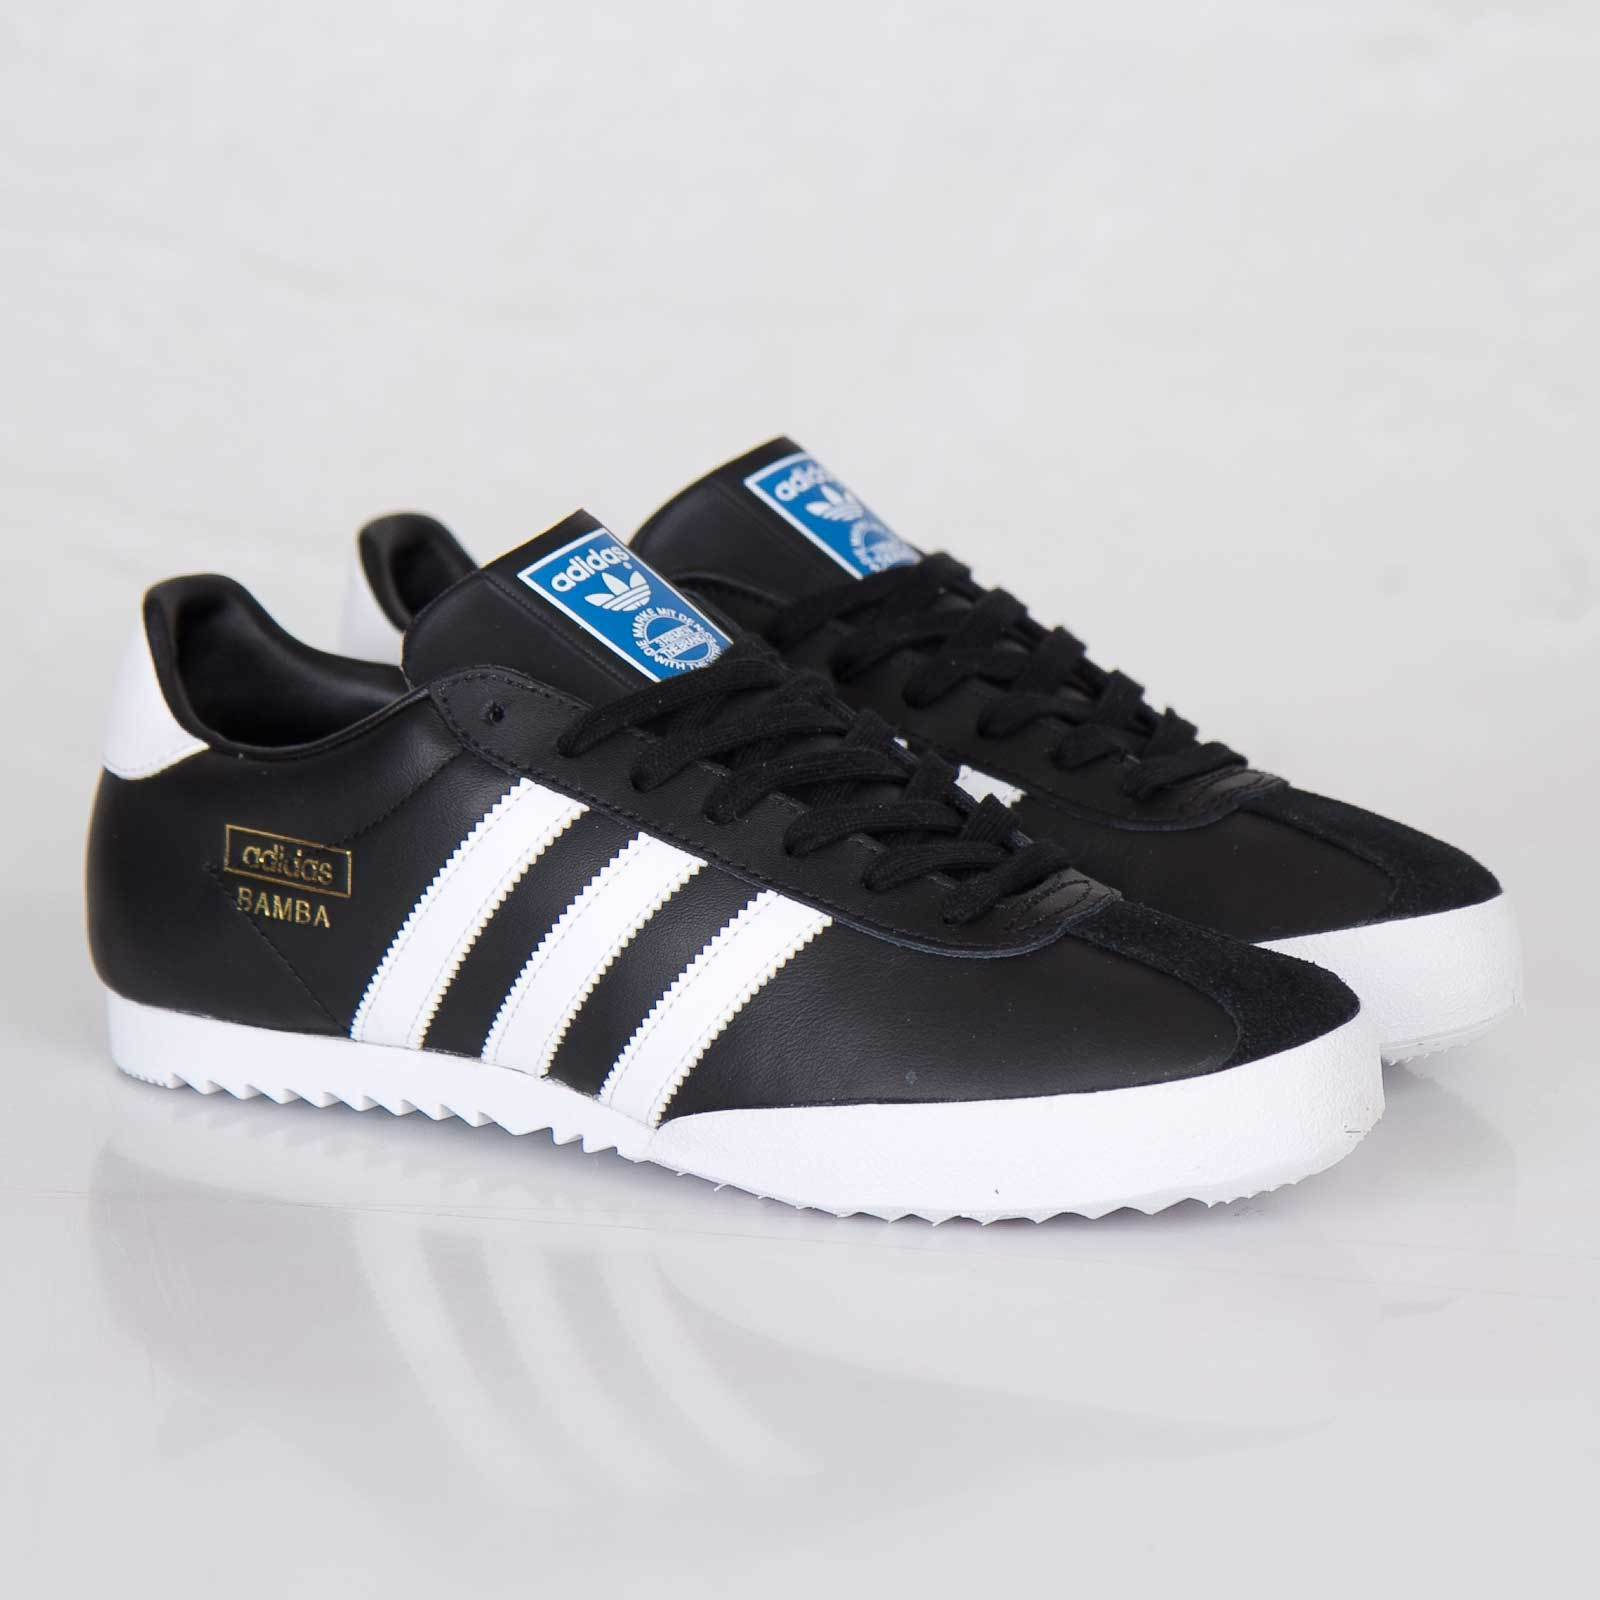 4074fcb34 ... adidas Originals Bamba Mens Casual Retro Gents Trainers Trainers  Trainers Shoes Sizes 7-12 UK ...